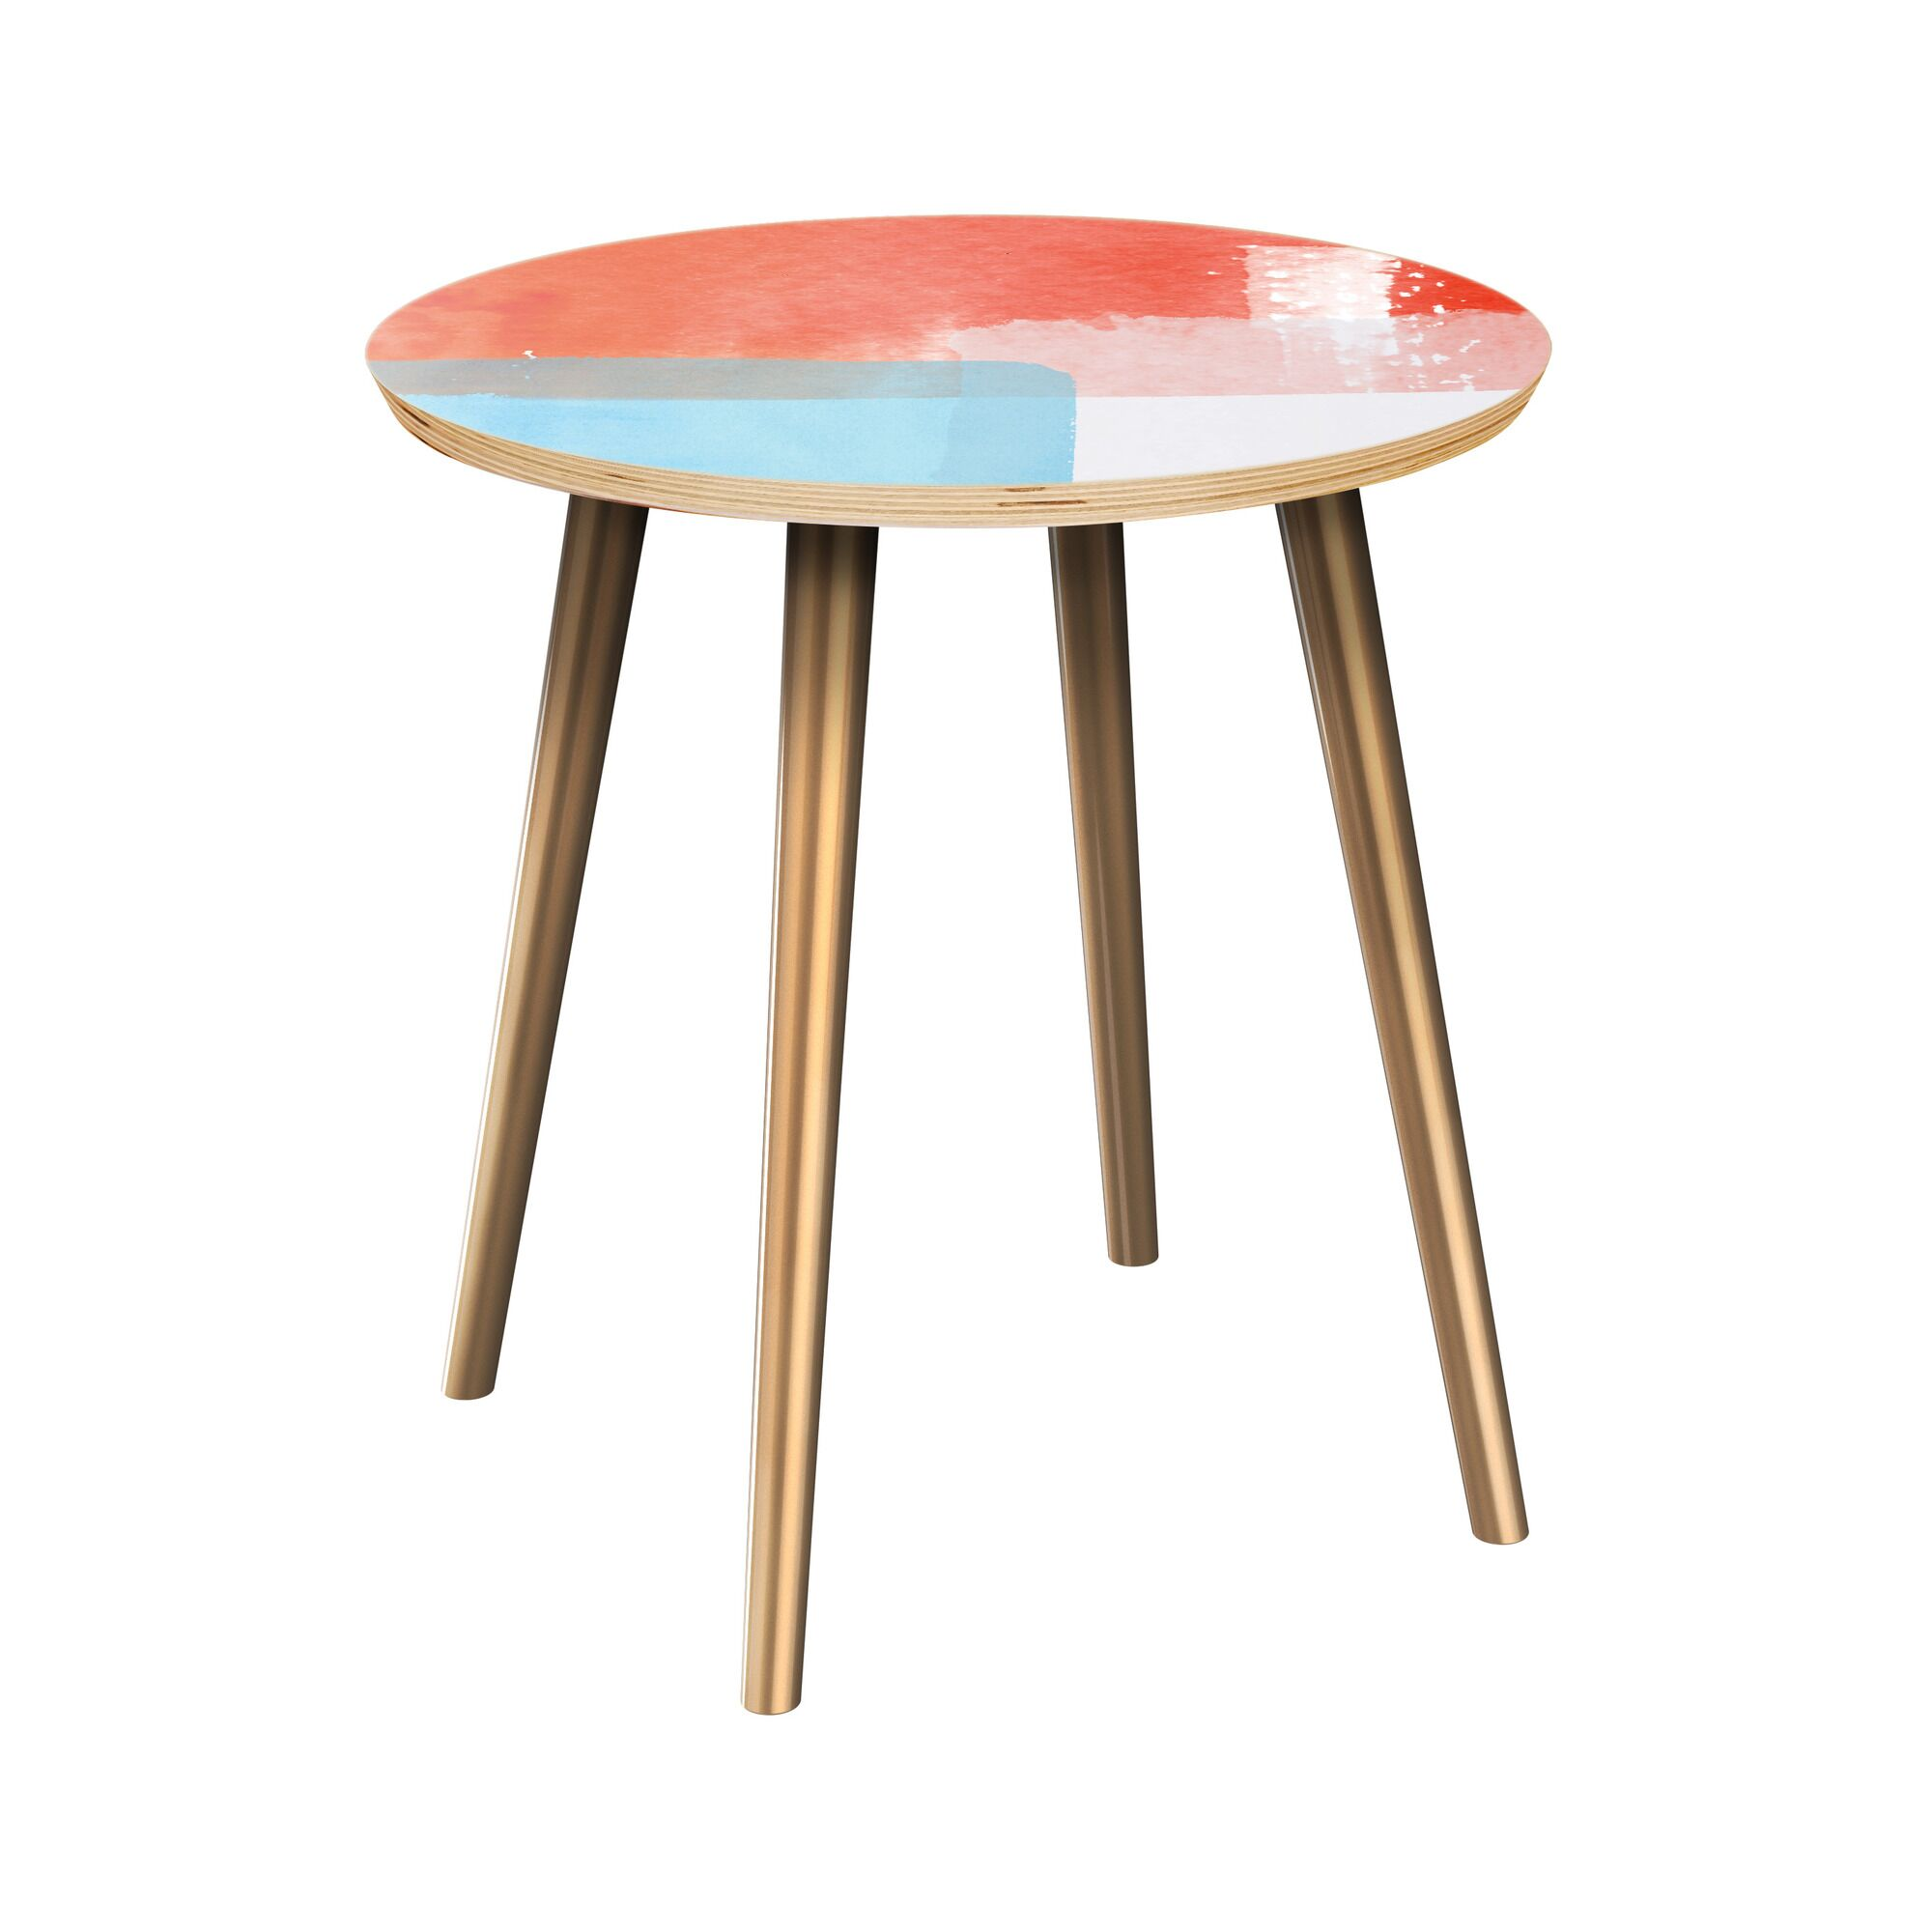 Etherton End Table Table Top Color: Natural, Table Base Color: Brass